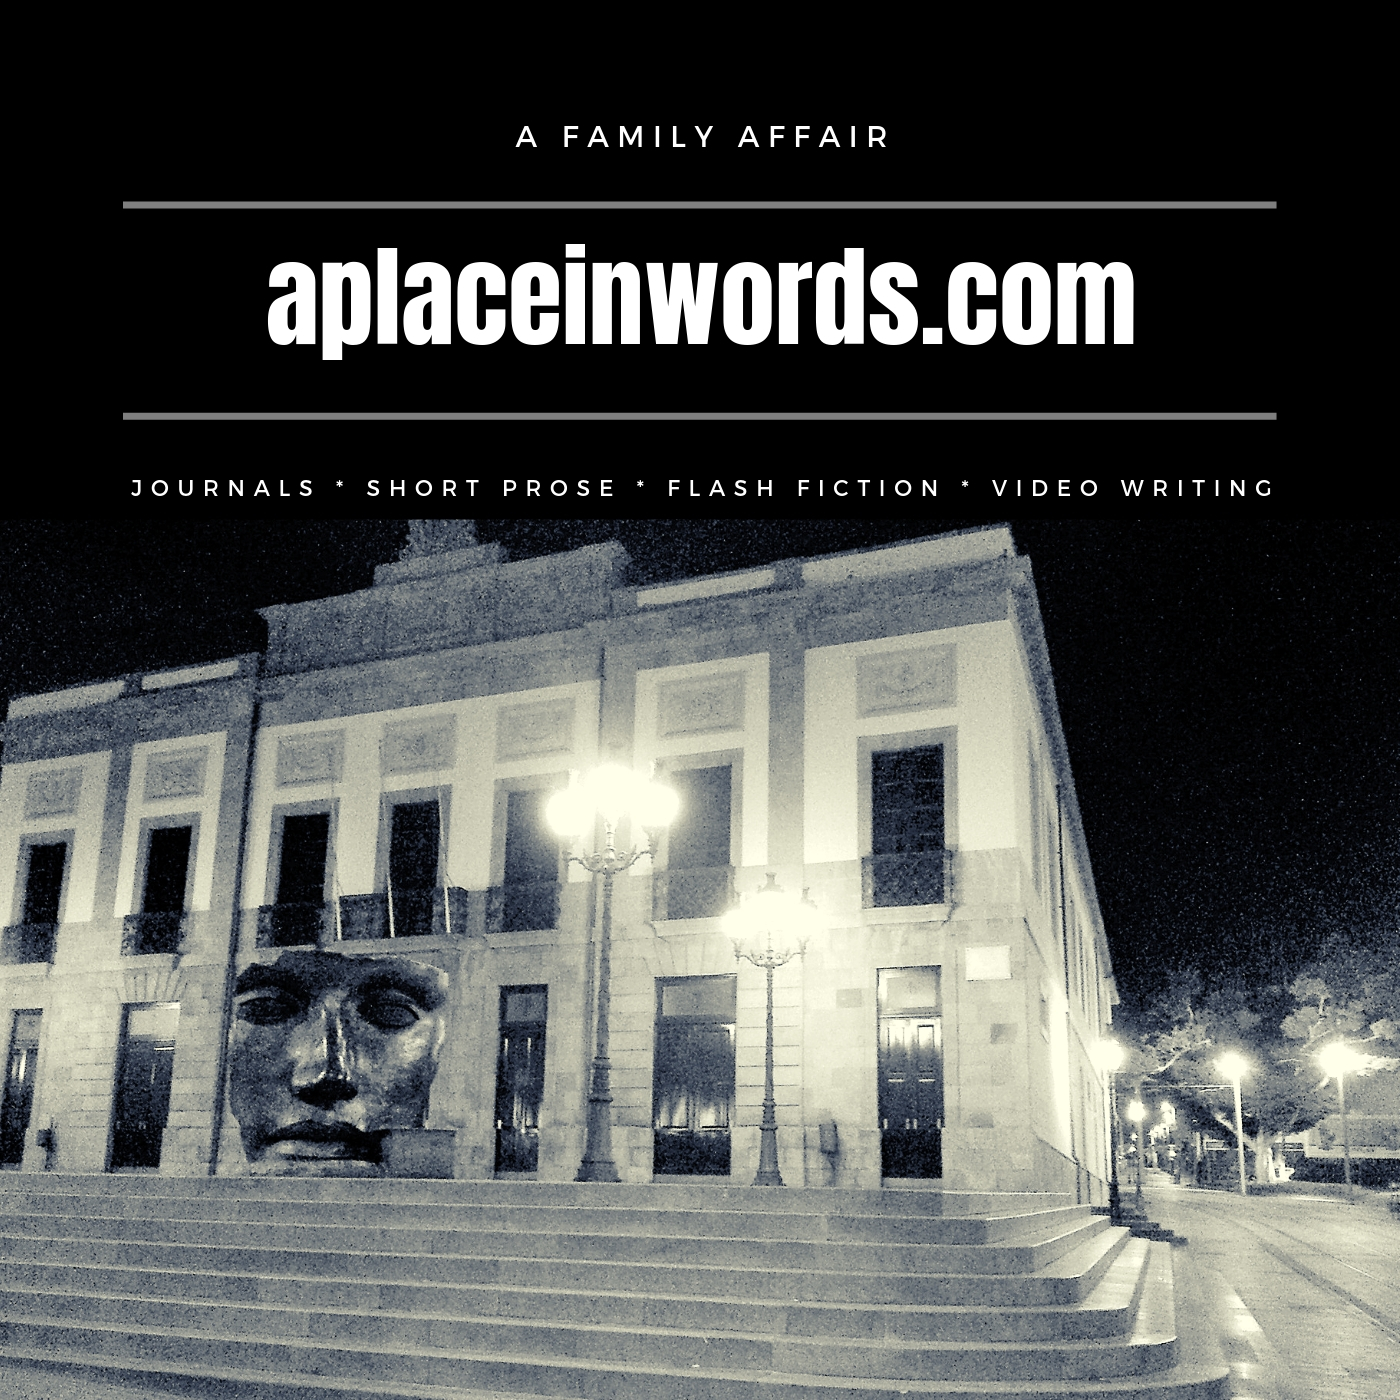 a-place-in-words